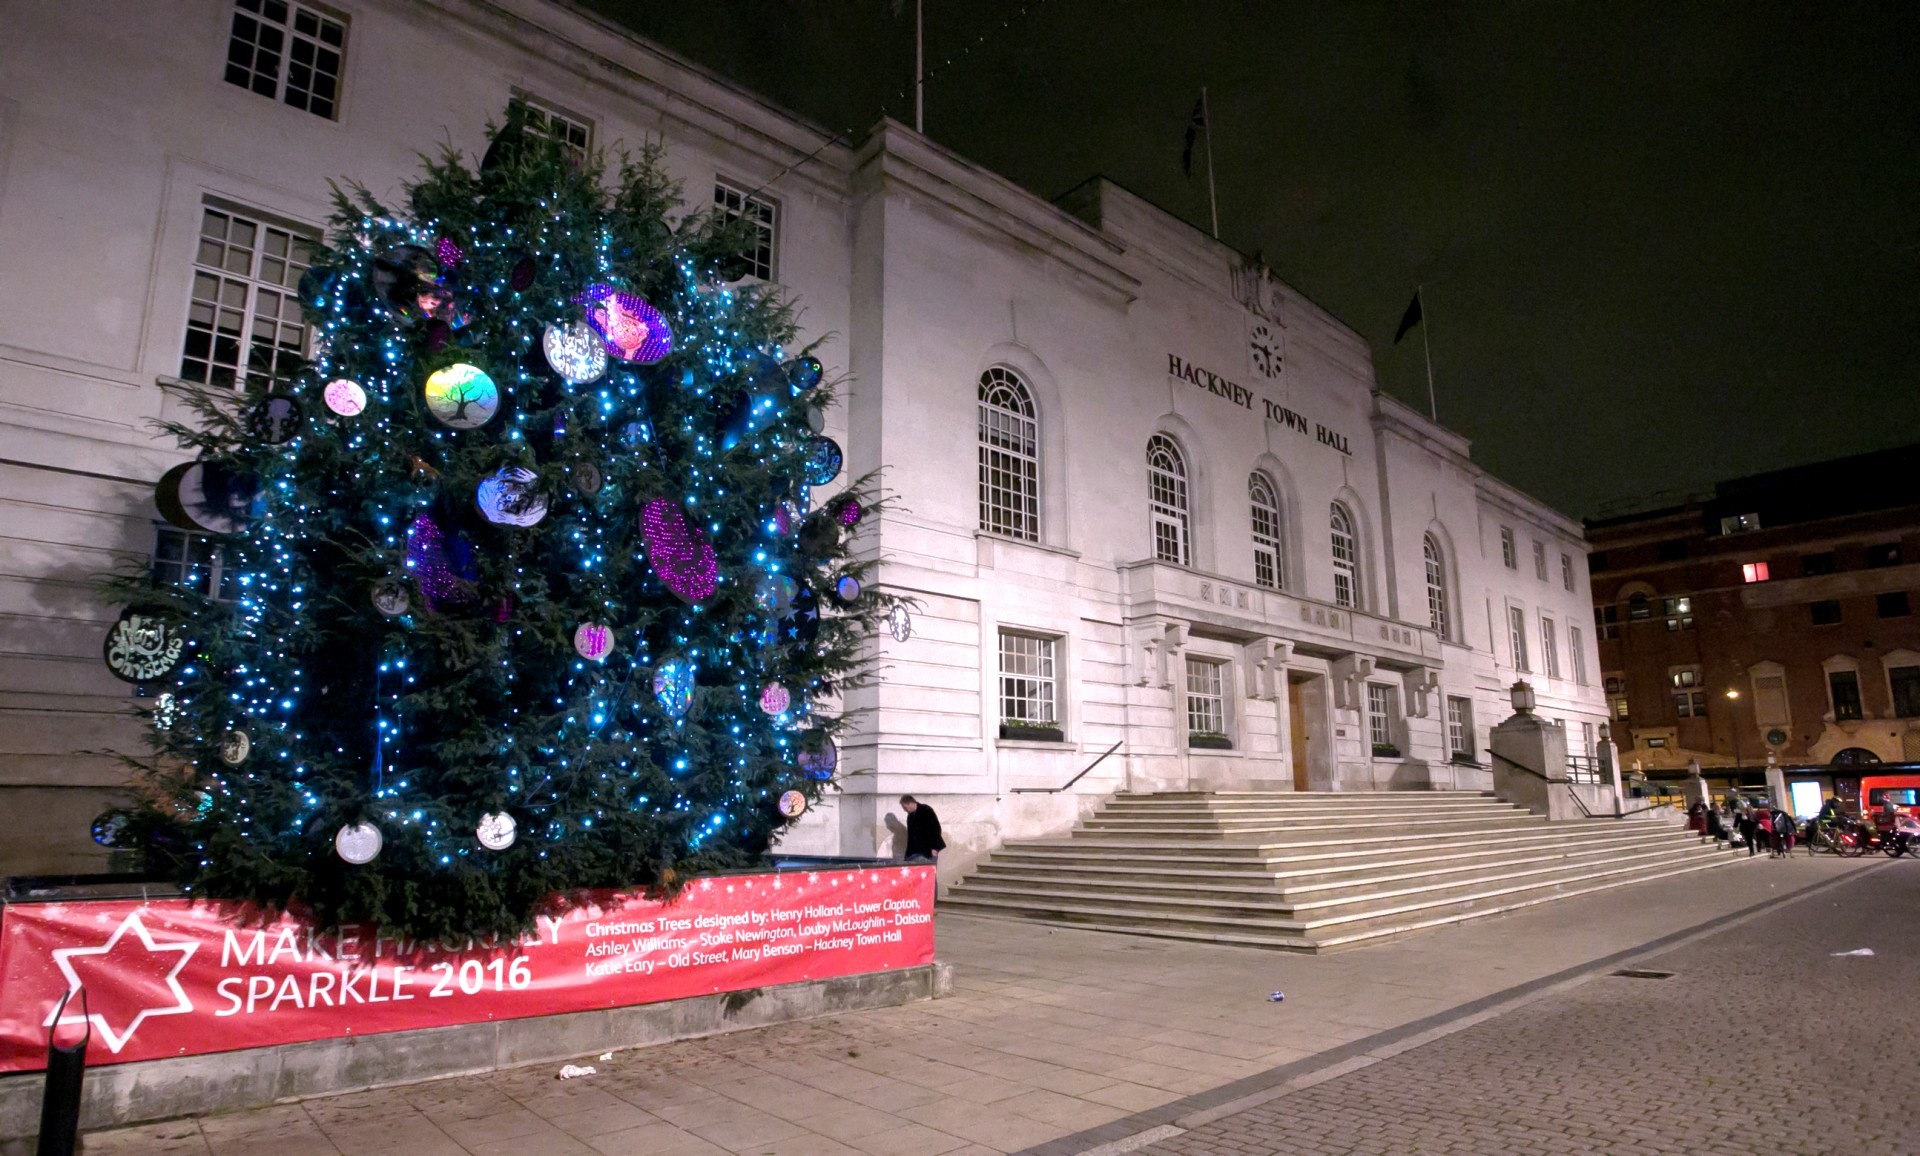 Hackney Central's Christmas lights have been switched on